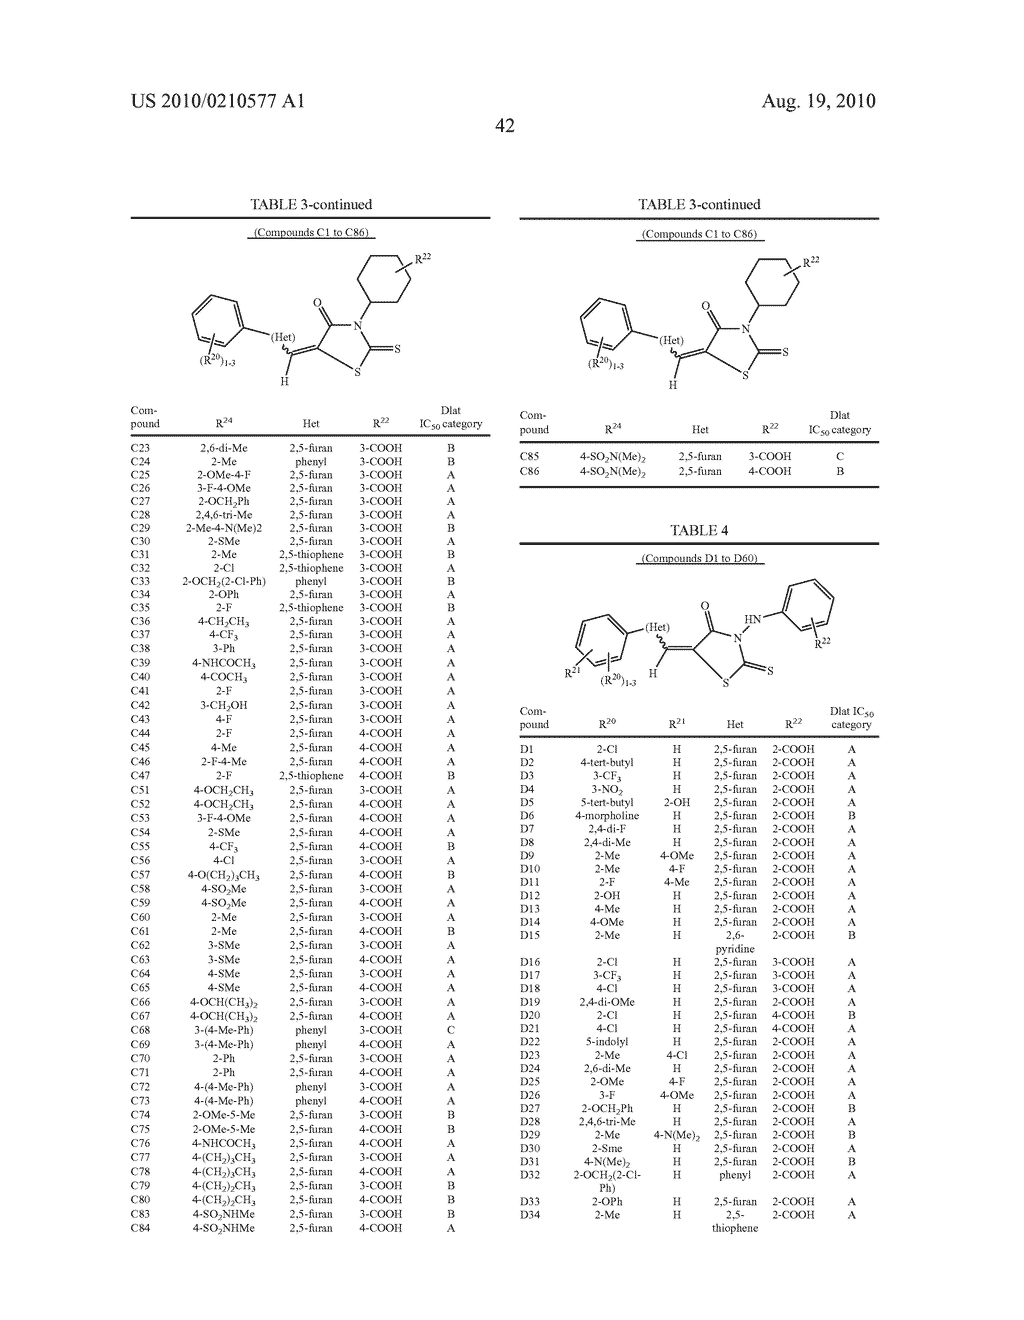 CYCLIC CARBOXYLIC ACID RHODANINE DERIVATIVES FOR THE TREATMENT AND PREVENTION OF TUBERCULOSIS - diagram, schematic, and image 52